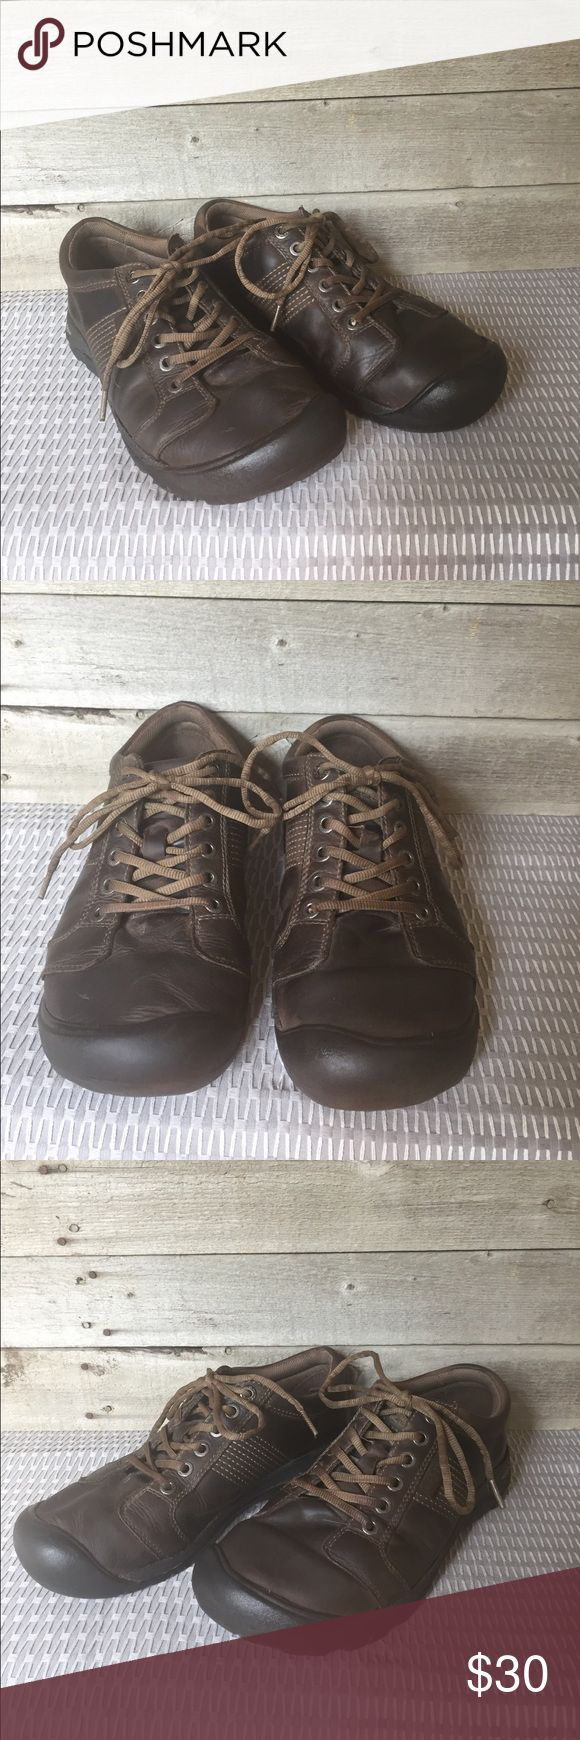 Keen Brown Leather Austin Lace-up Men's 9 EU 42 These are a staple for every wardrobe. This pair of Brown Keen Austin shoes have a lot of wear left and are in solid pre-owned condition. Wear is visible on front in crinkling of leather and some side sole wear as pictured. Bundle and save! Offers welcome. Keen Shoes Sneakers